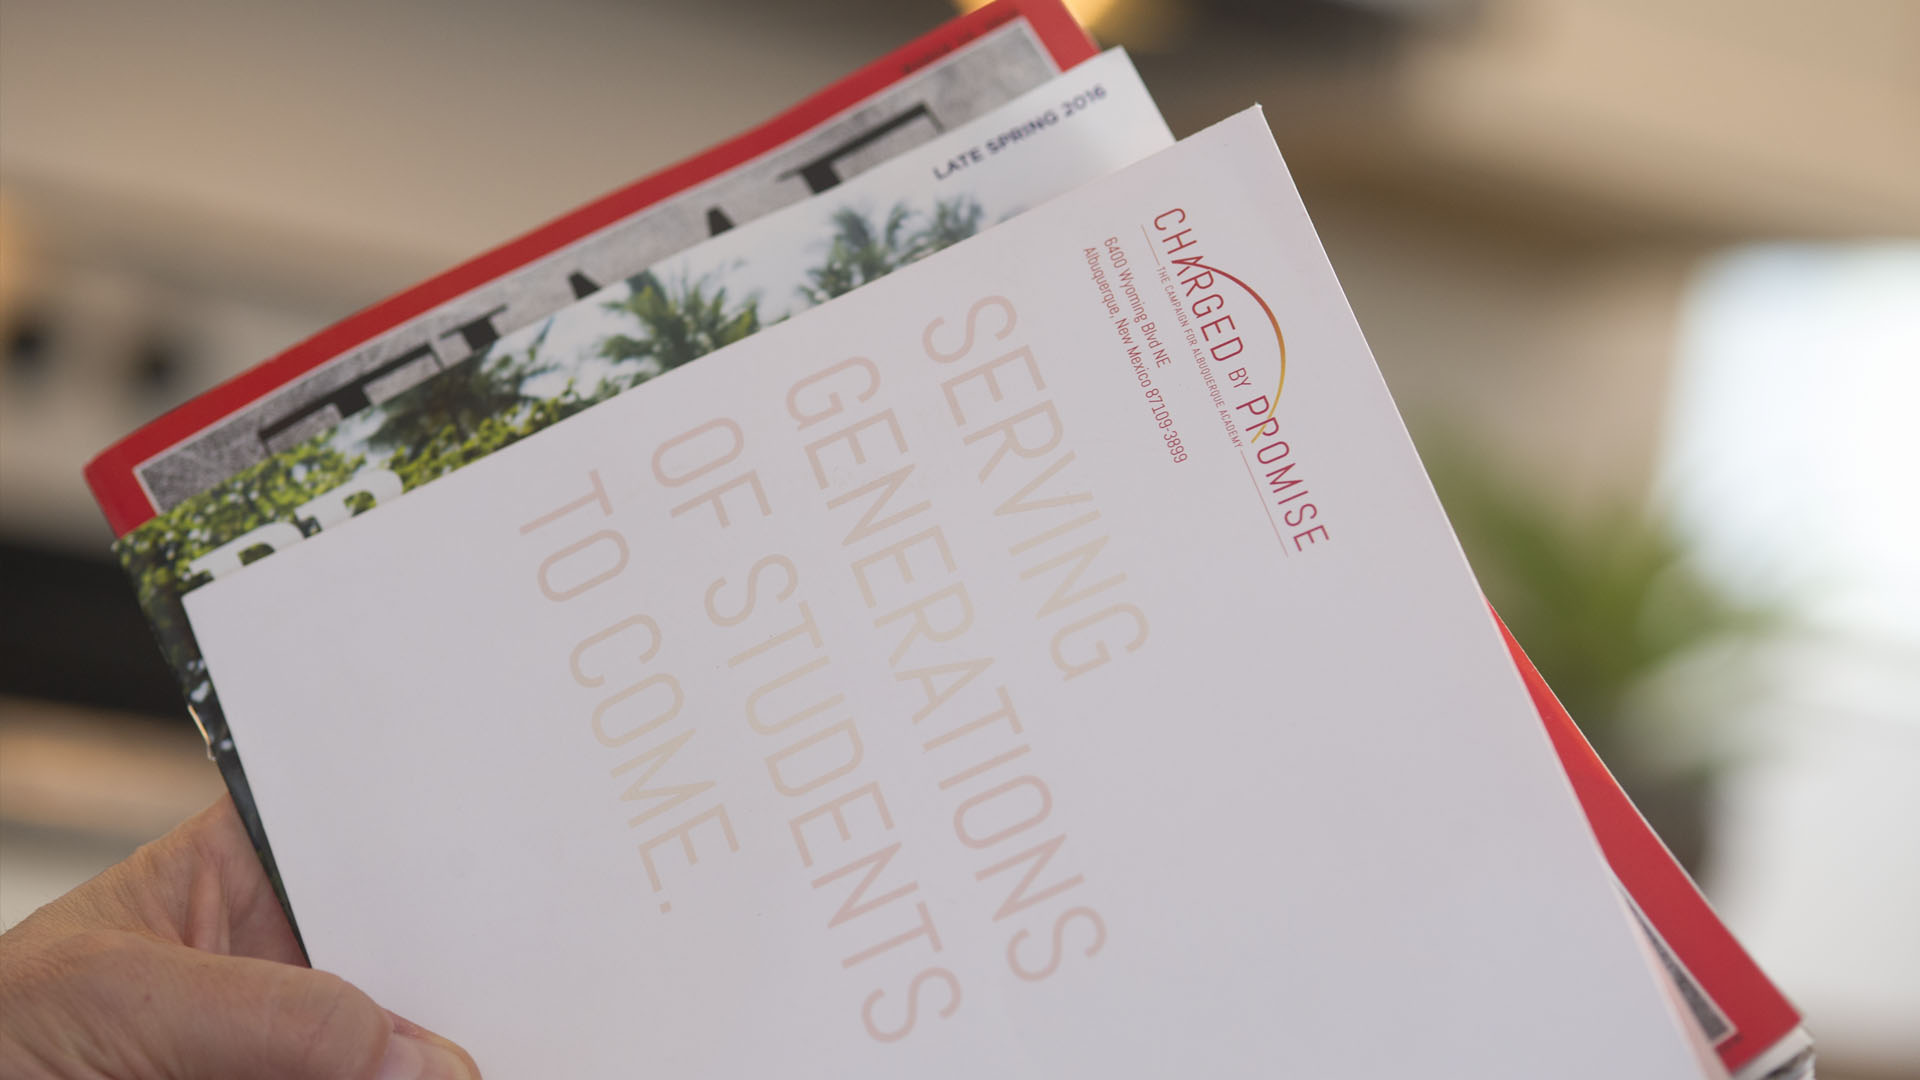 Albuquerque-Academy-Branding-Marketing-Admissions-Campaign-Fundraising-Direct-Mail_02.jpg